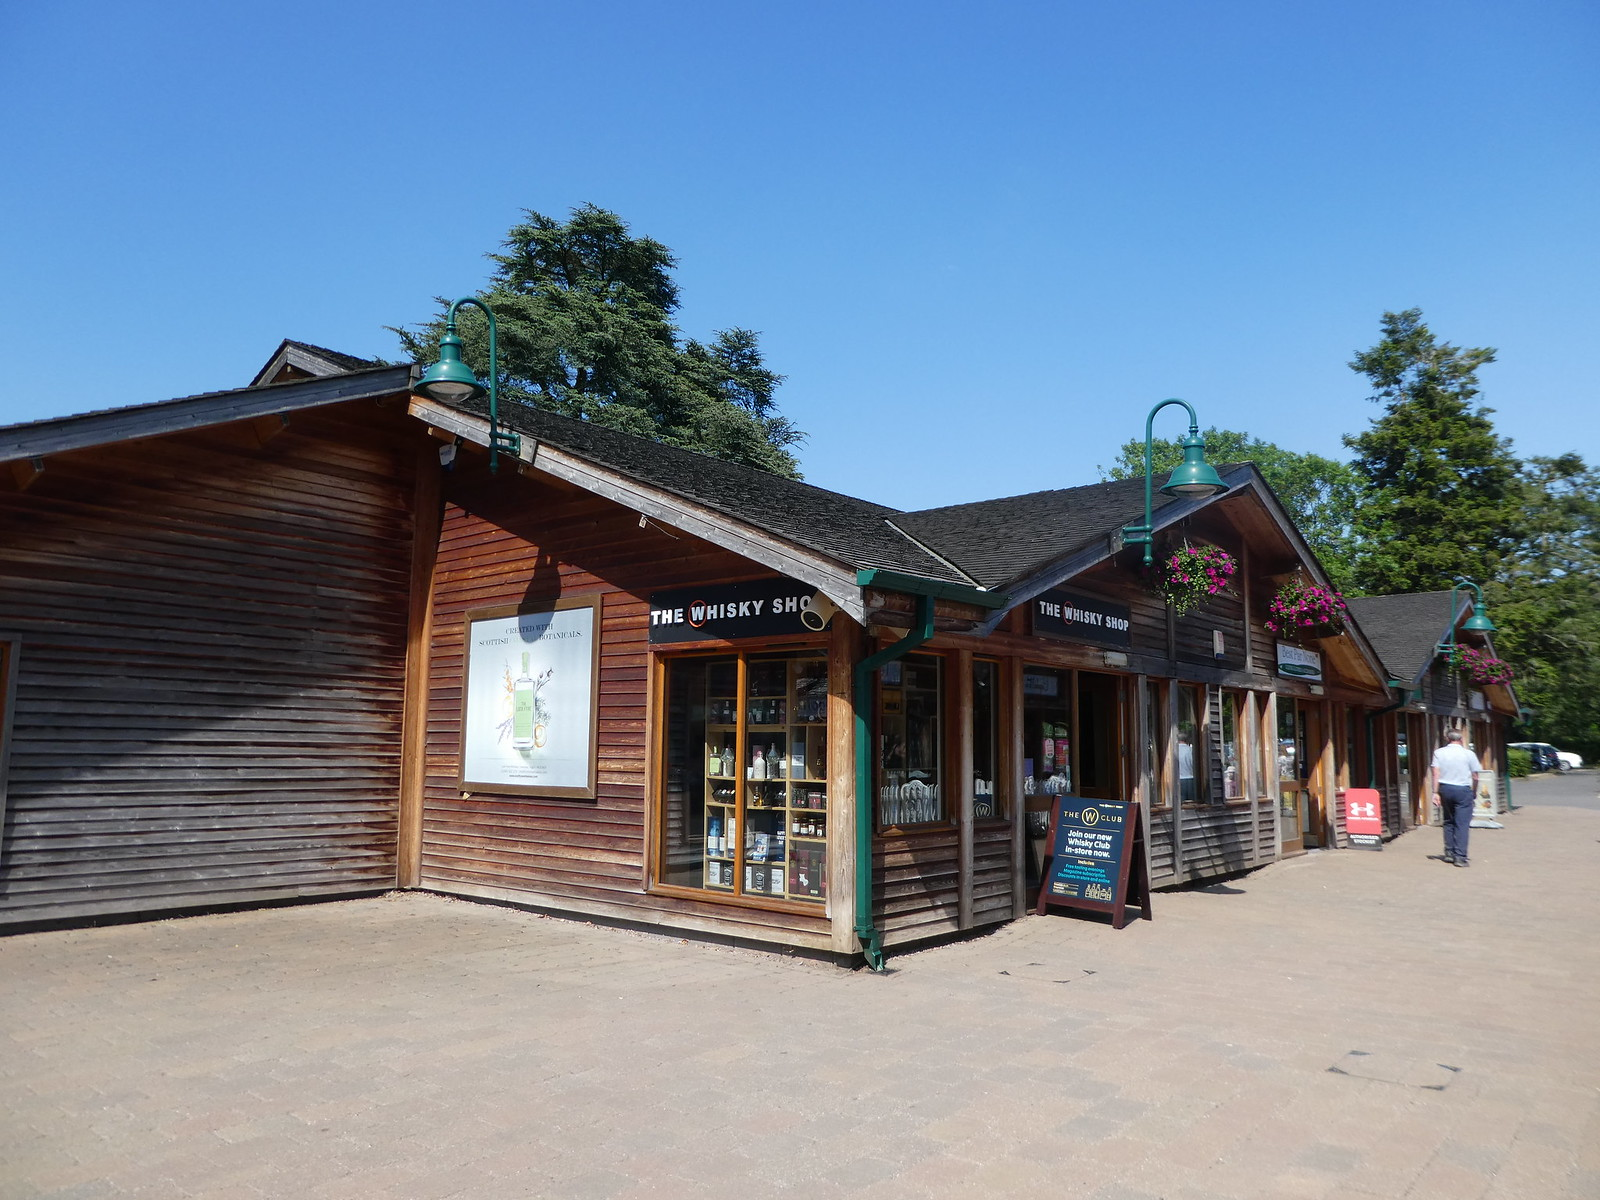 Trentham Shopping Village, Trentham Estate